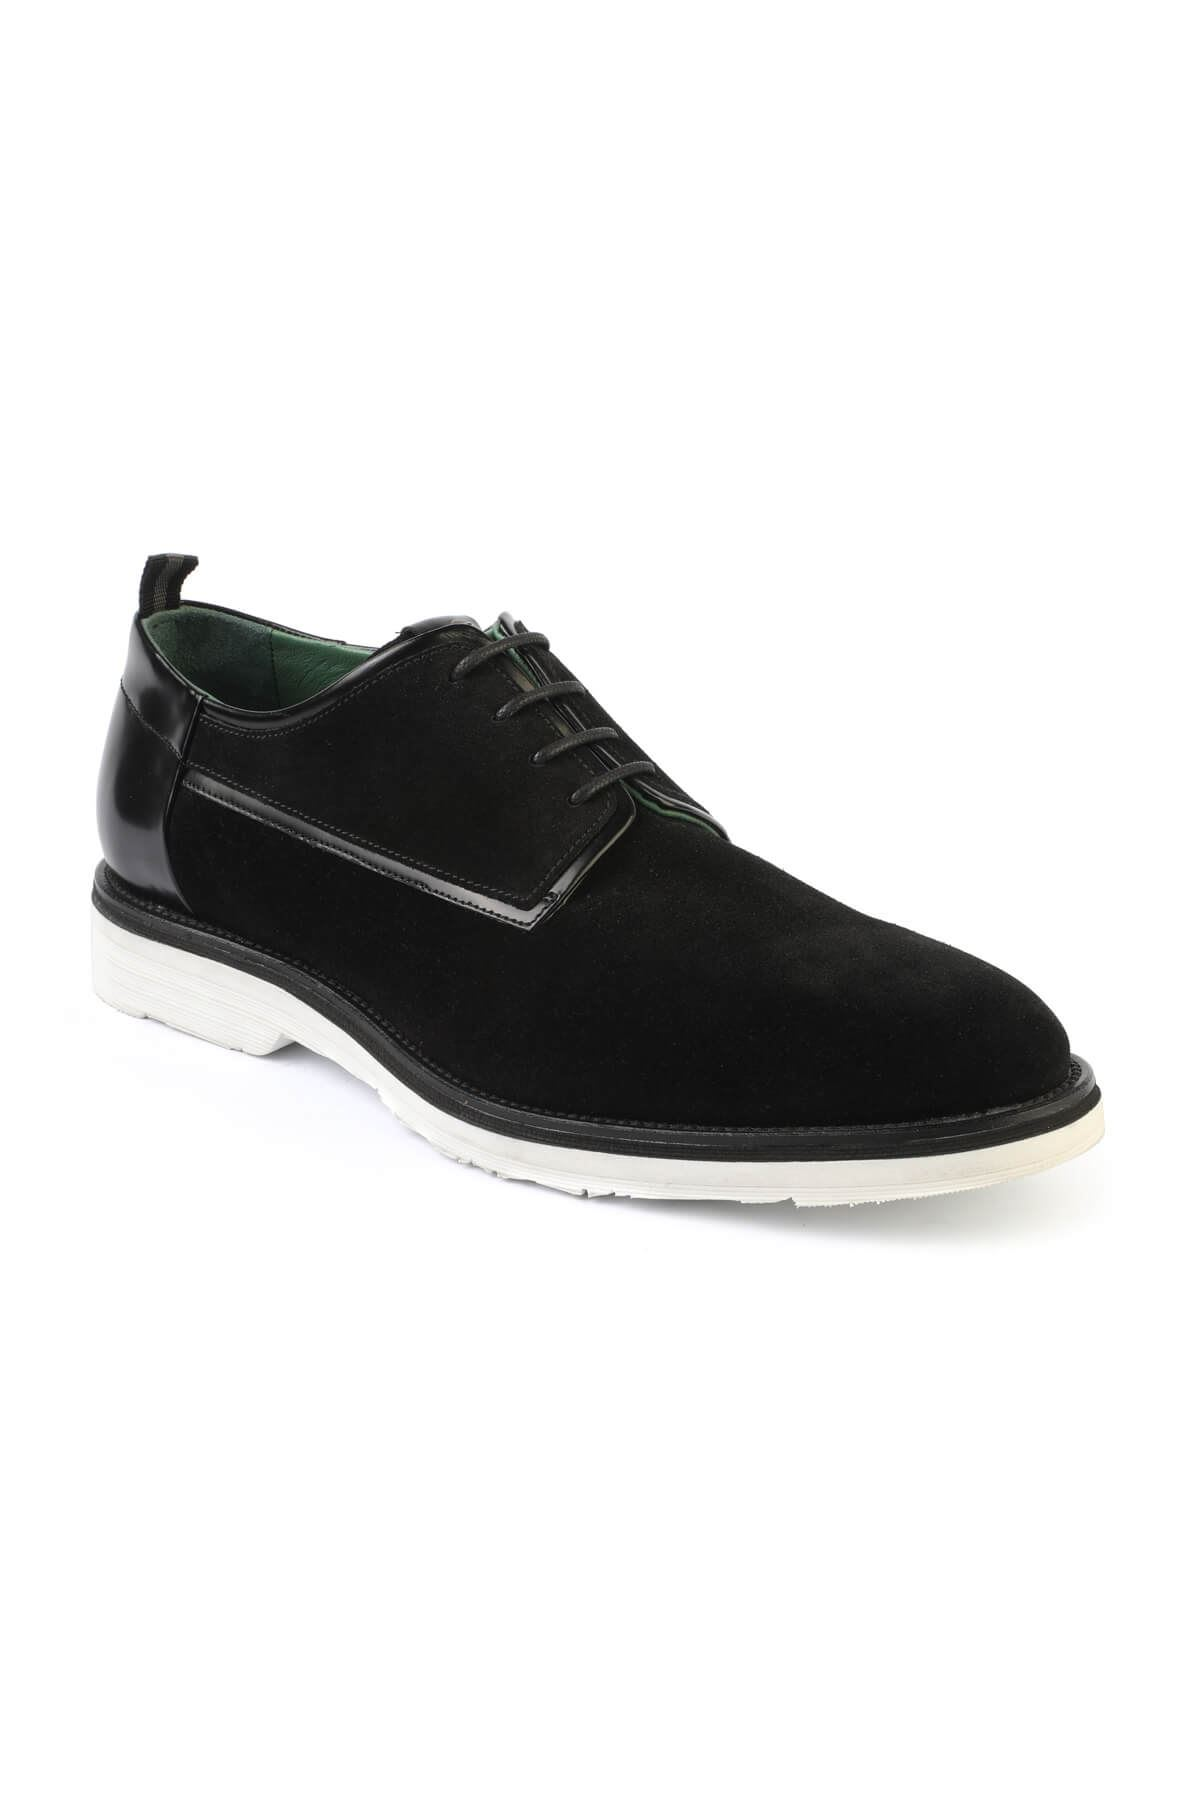 Libero T1304 Black Casual Shoes